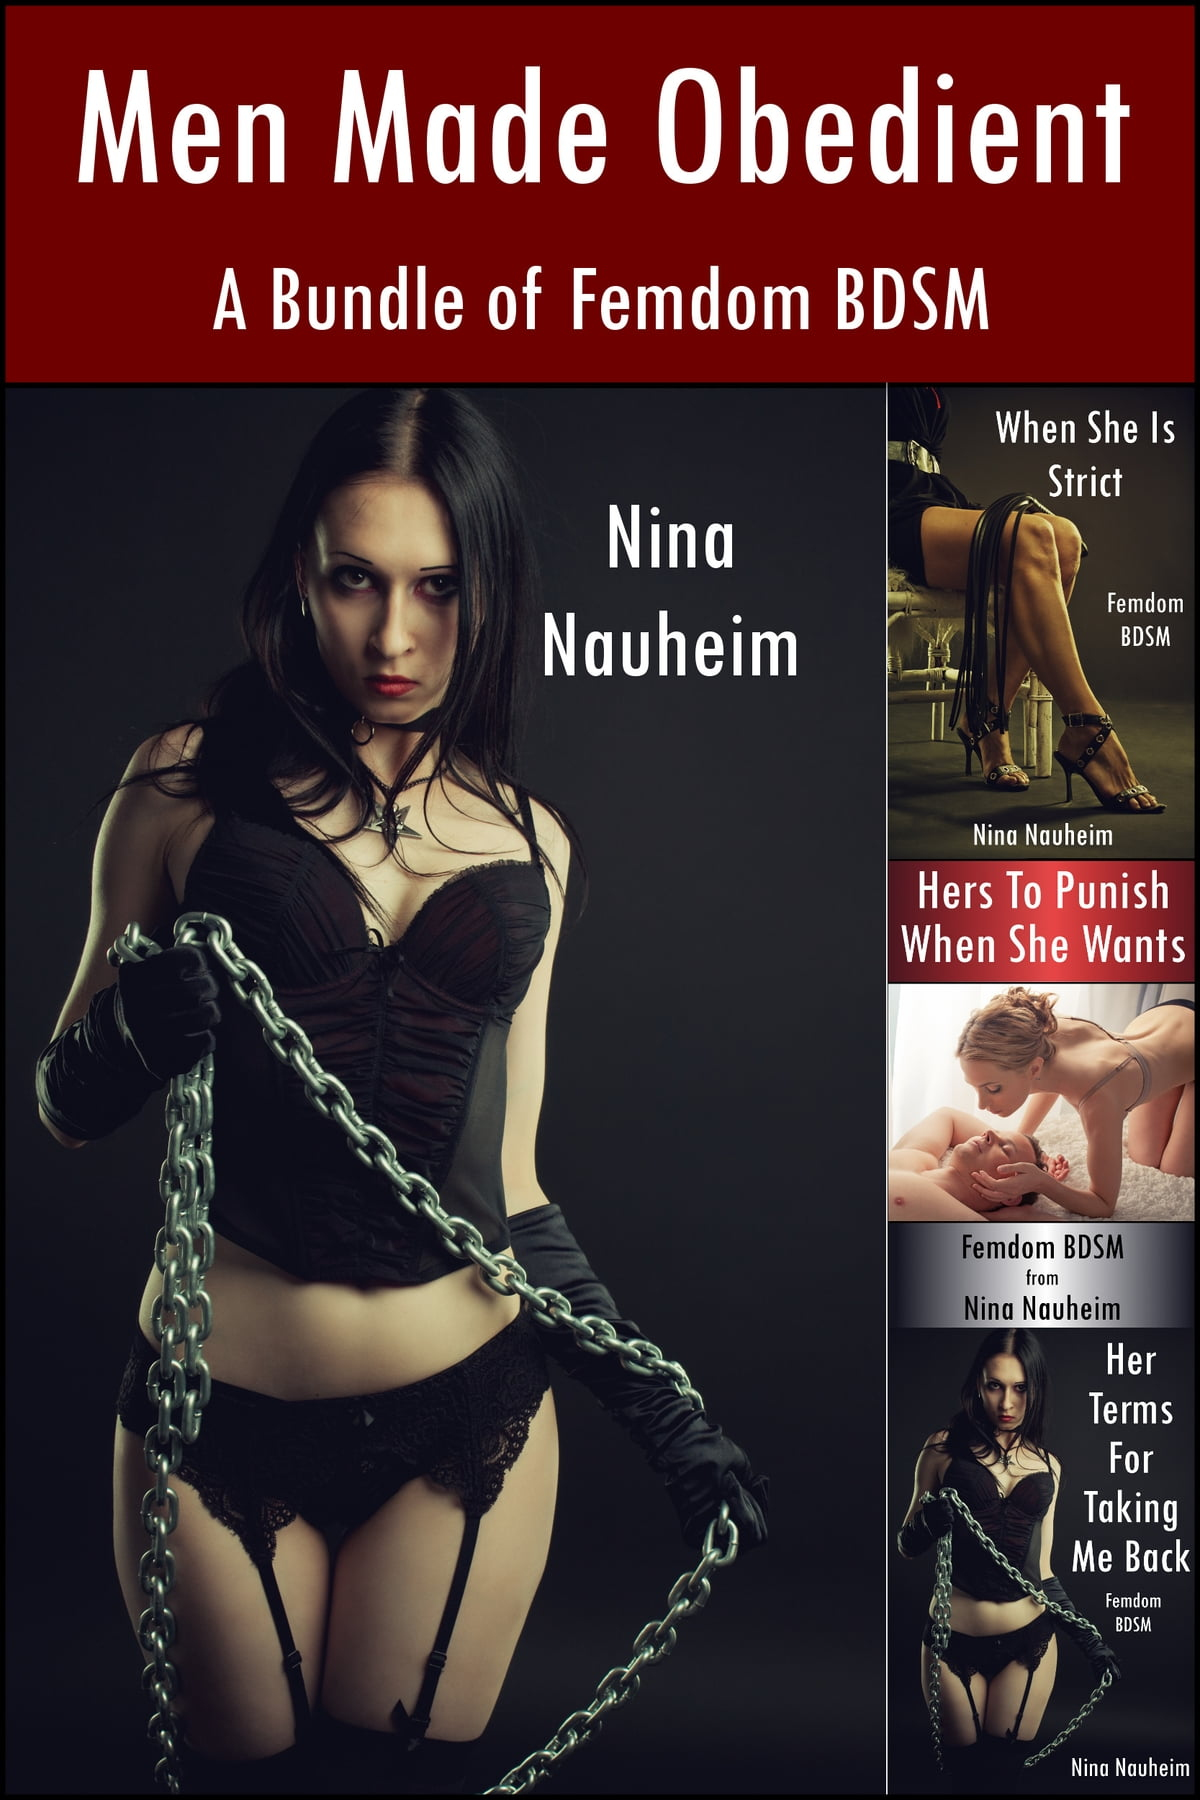 not bdsm torture images think, what false